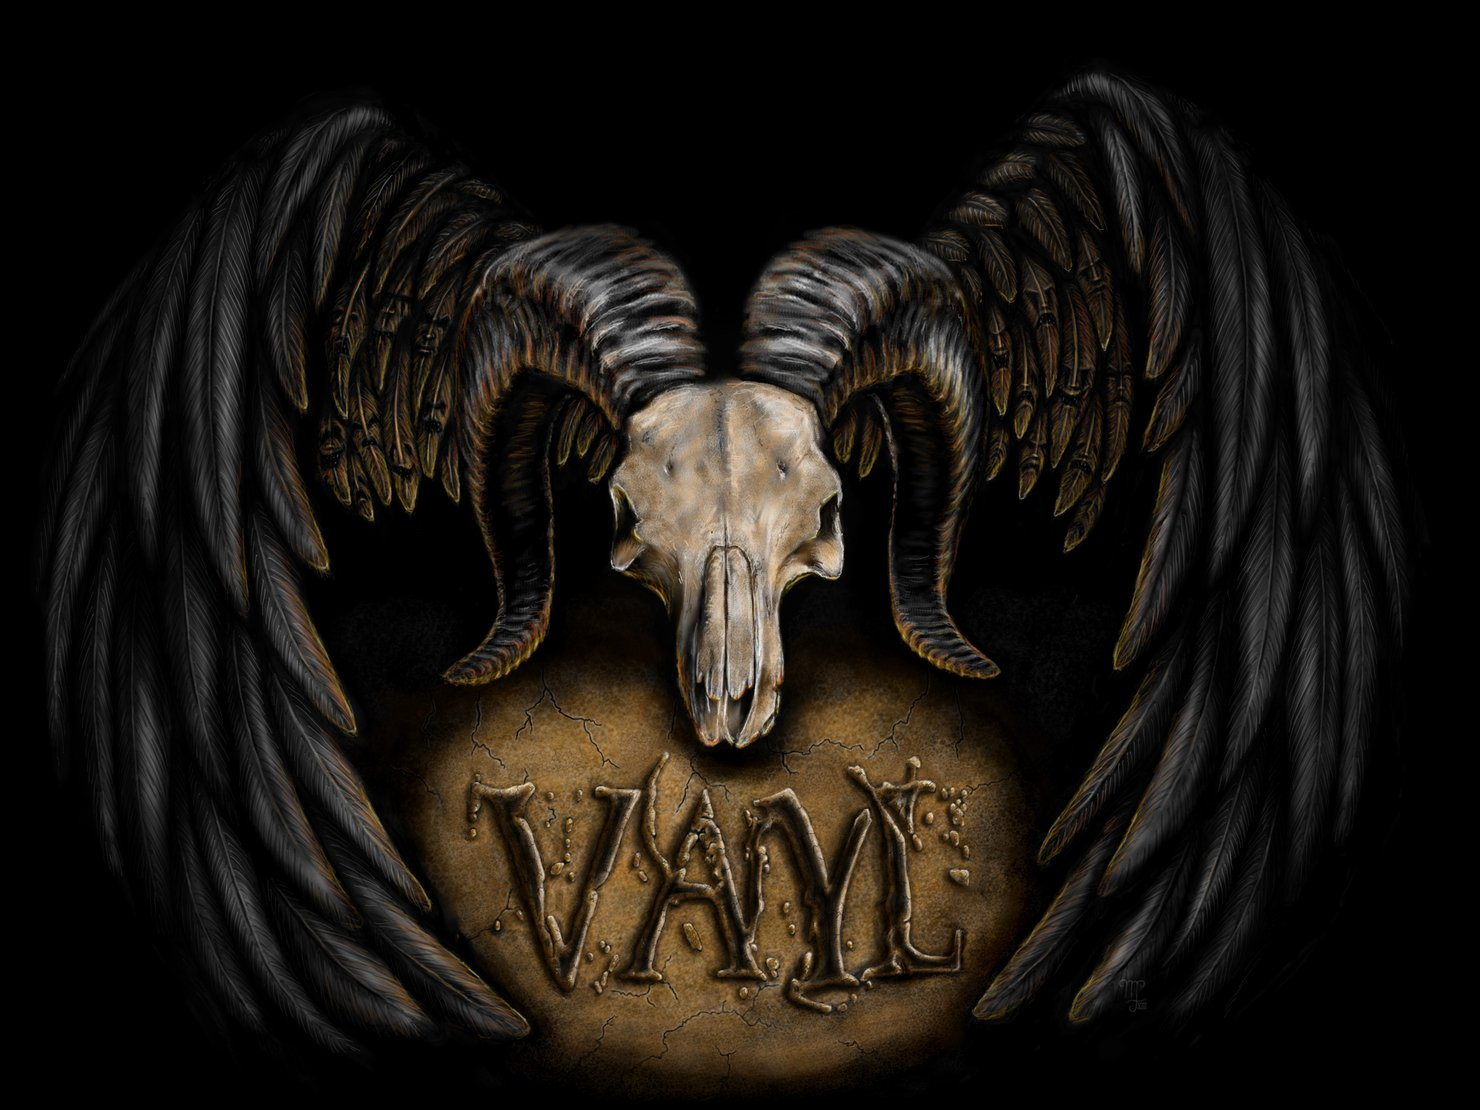 Image for VAyL